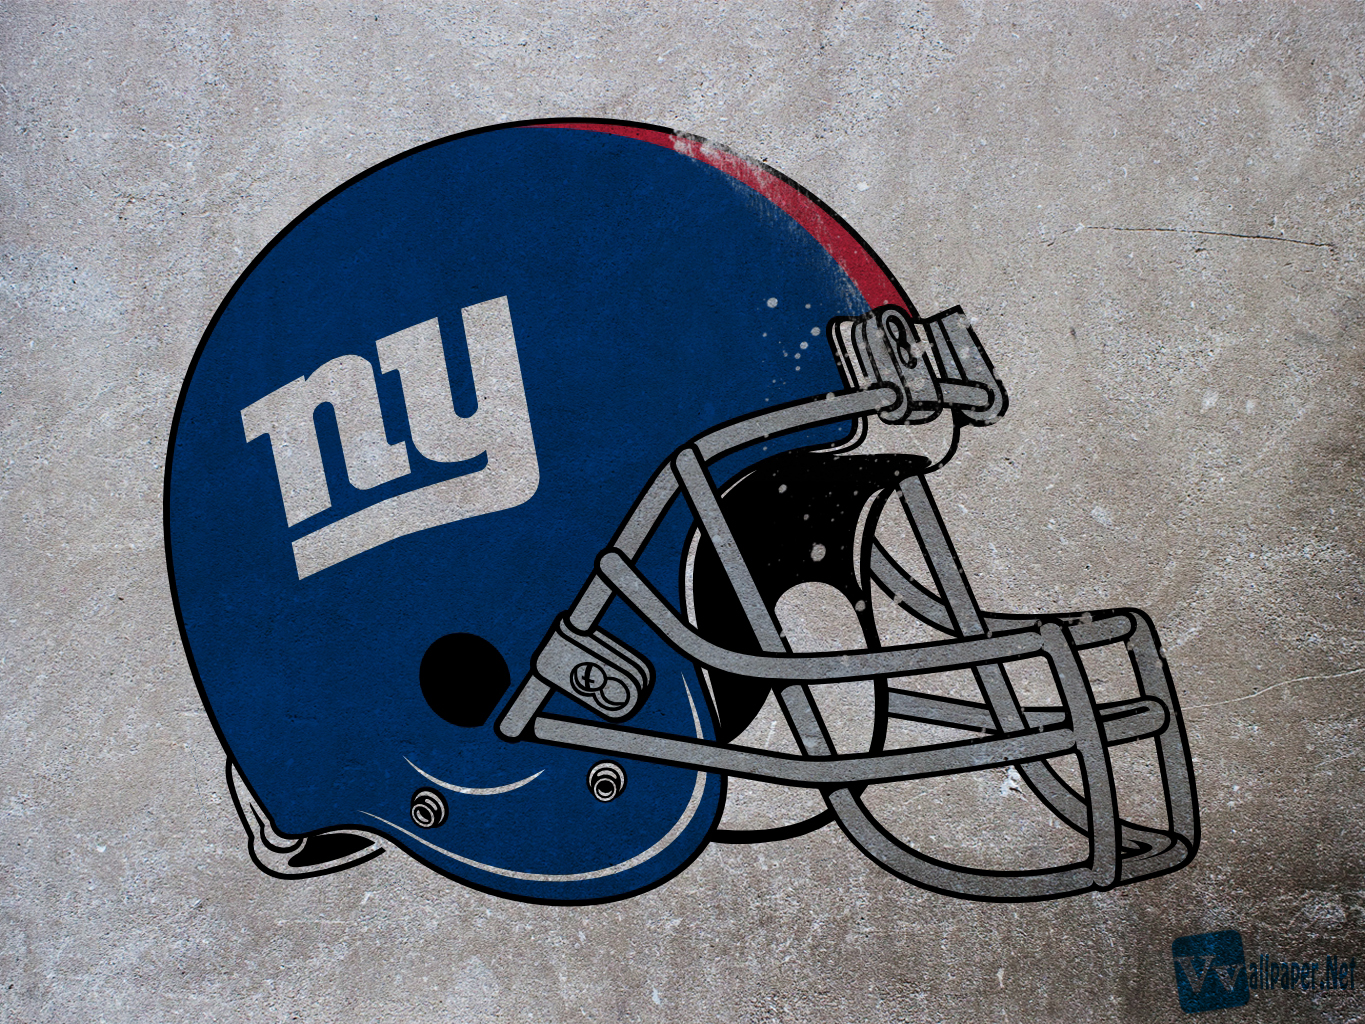 World Top 10 Wallpaper New York Giants Logo Helmet Hd Wallpapers